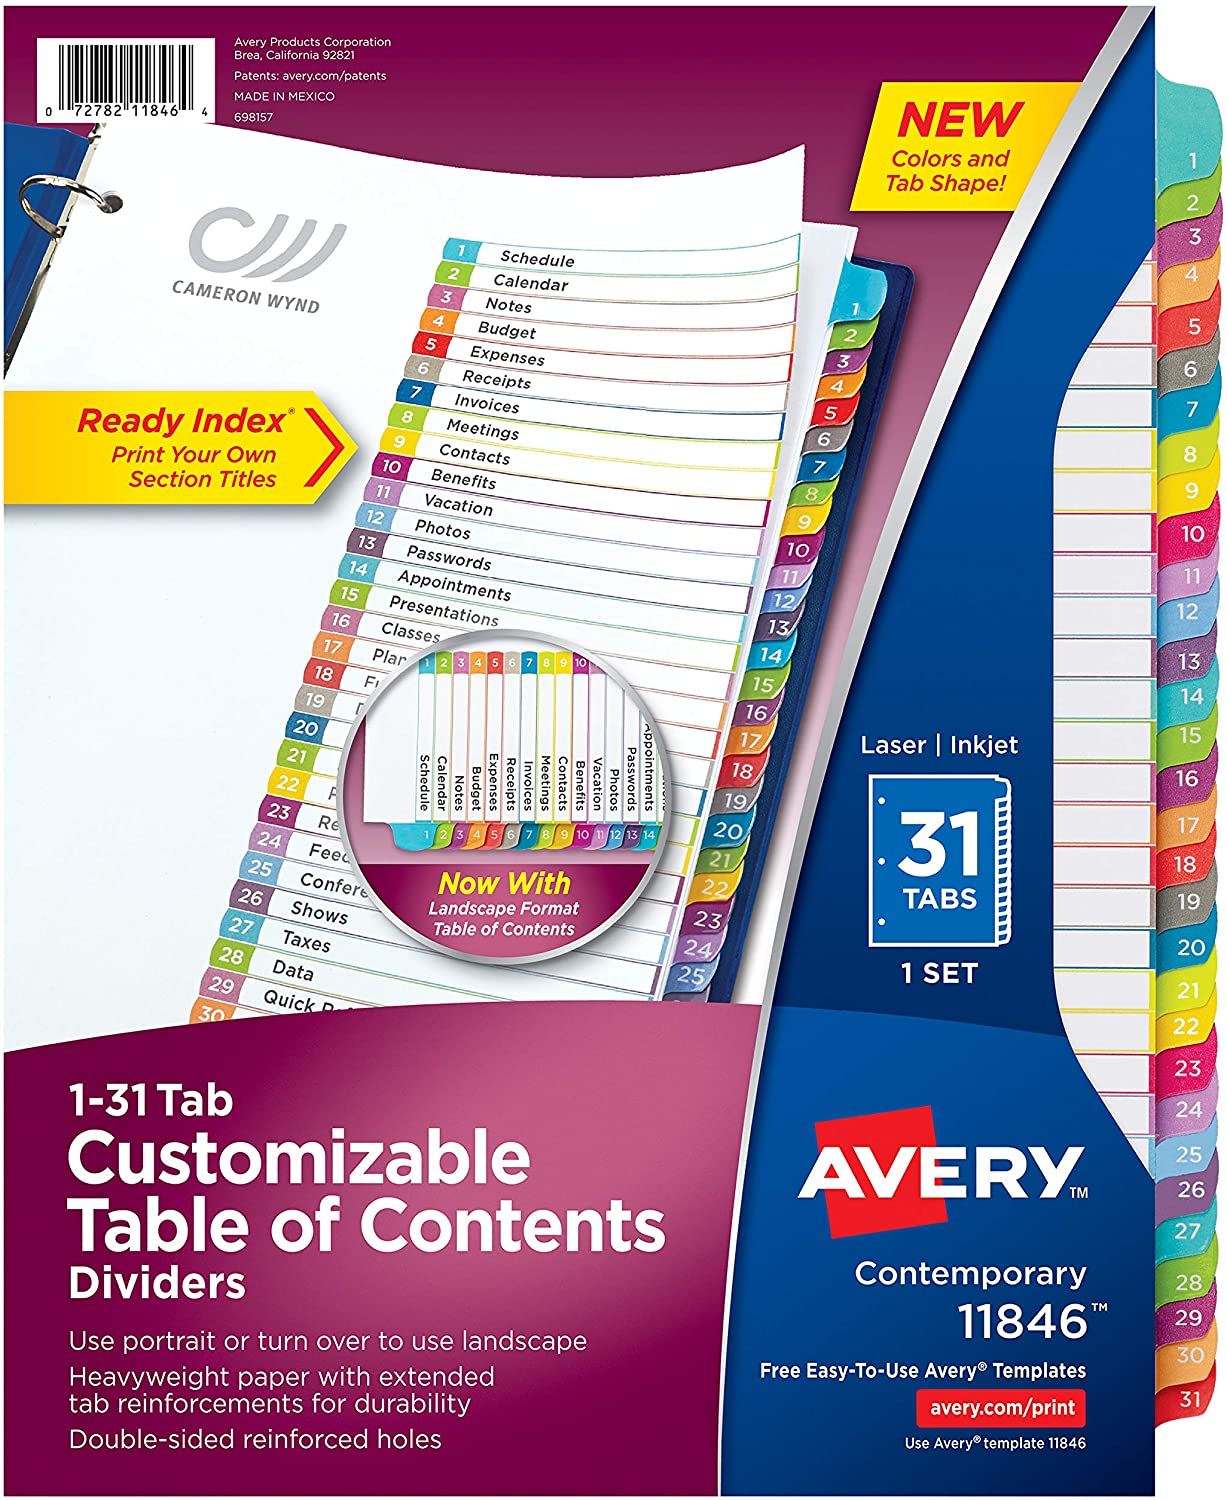 AVERY 1-31 Tab Dividers for 3 Ring Binders, Customizable Table of Contents, Multicolor Tabs, 1 Set, 12 Packs (11846)